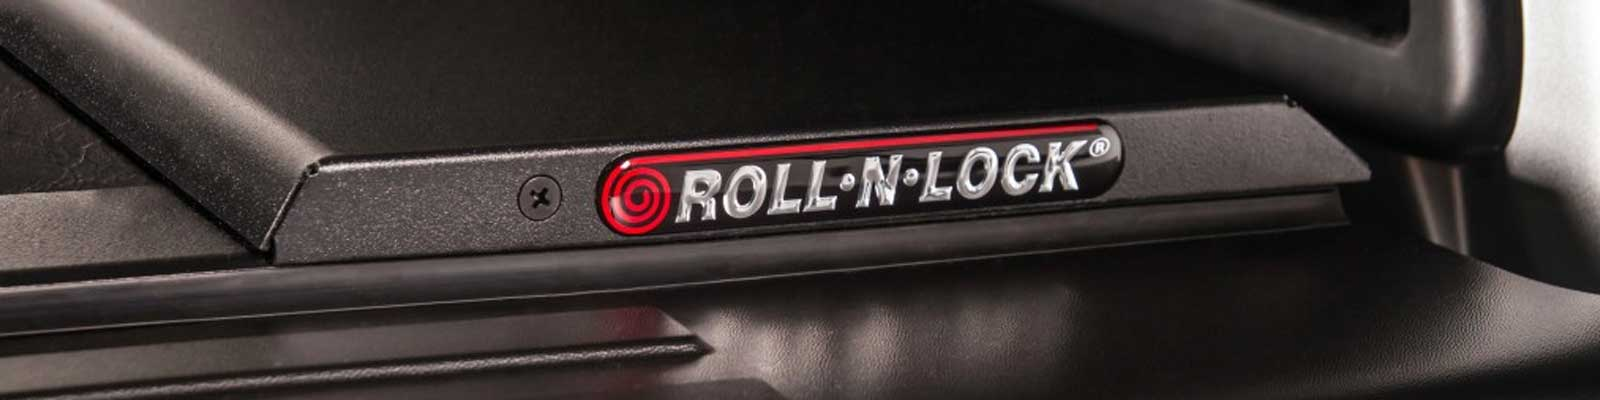 Roll N Lock Spare Parts